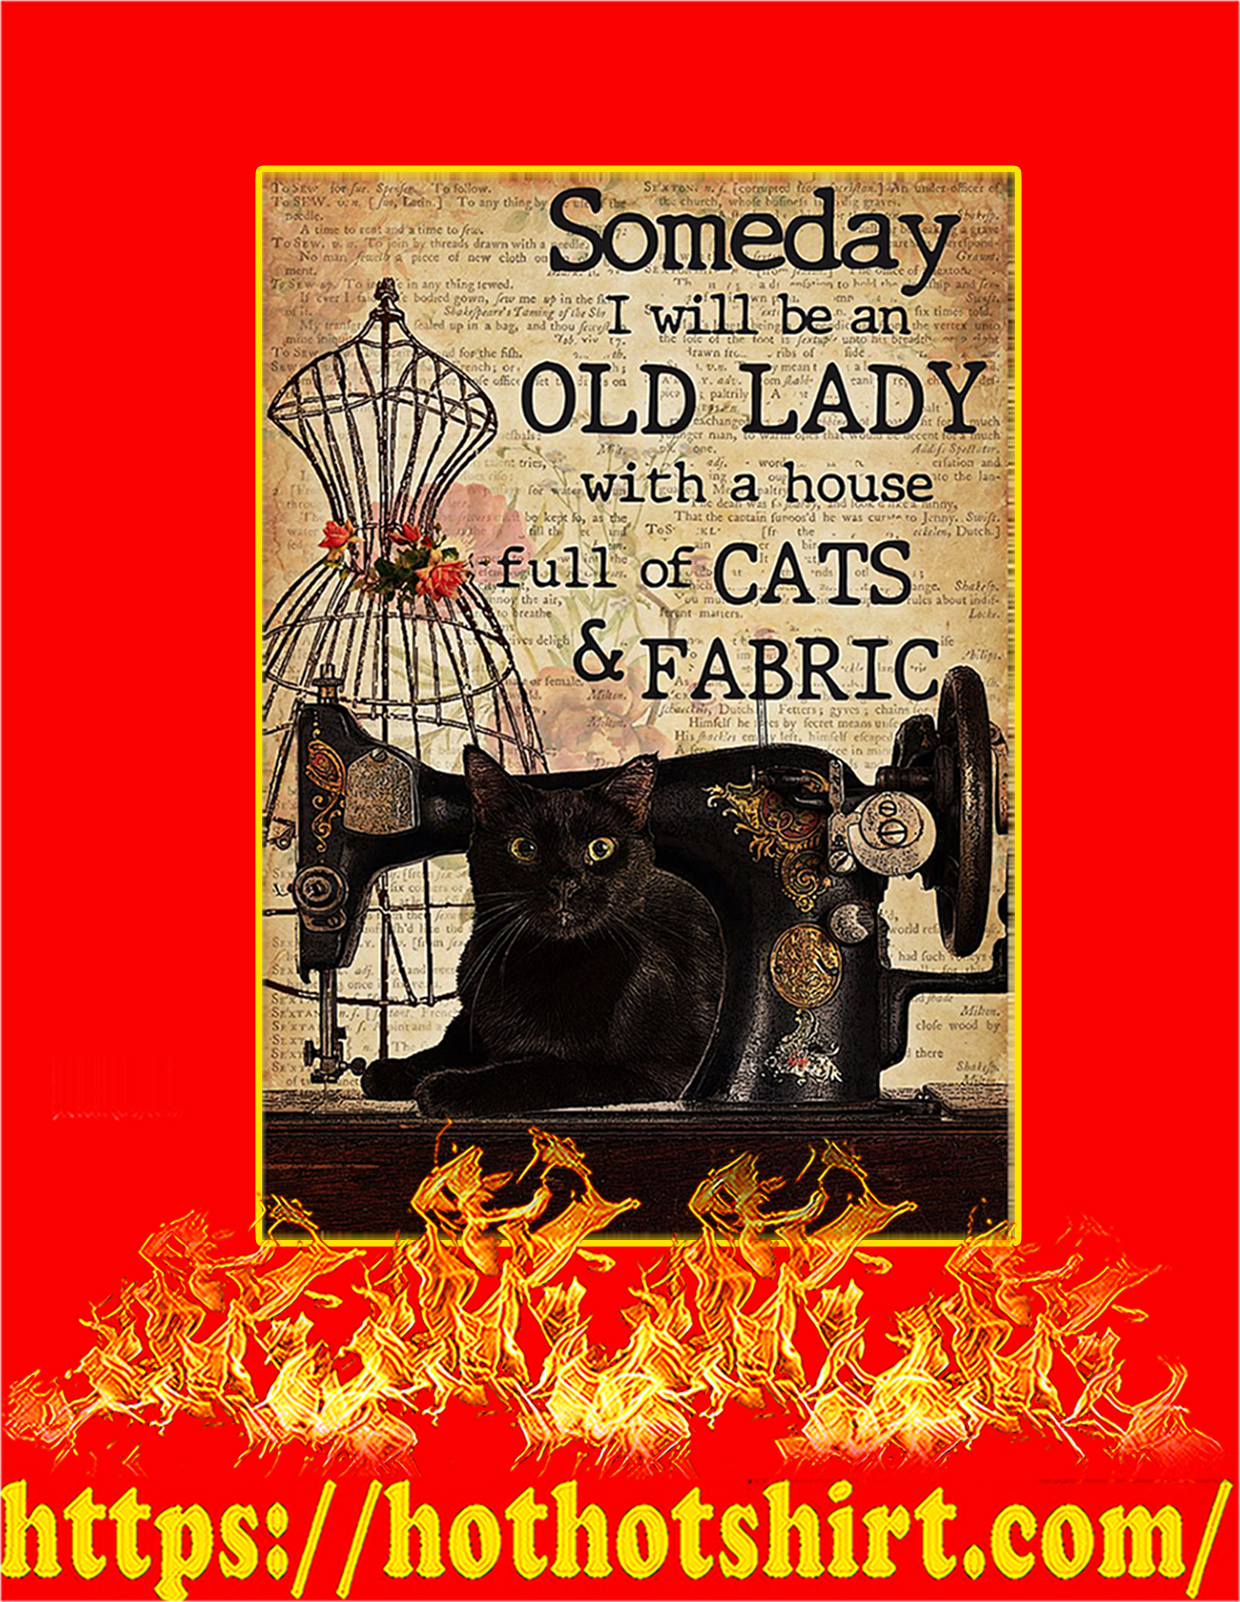 Sewing Someday I will be an old lady with a house full of cats and fabric poster - A3